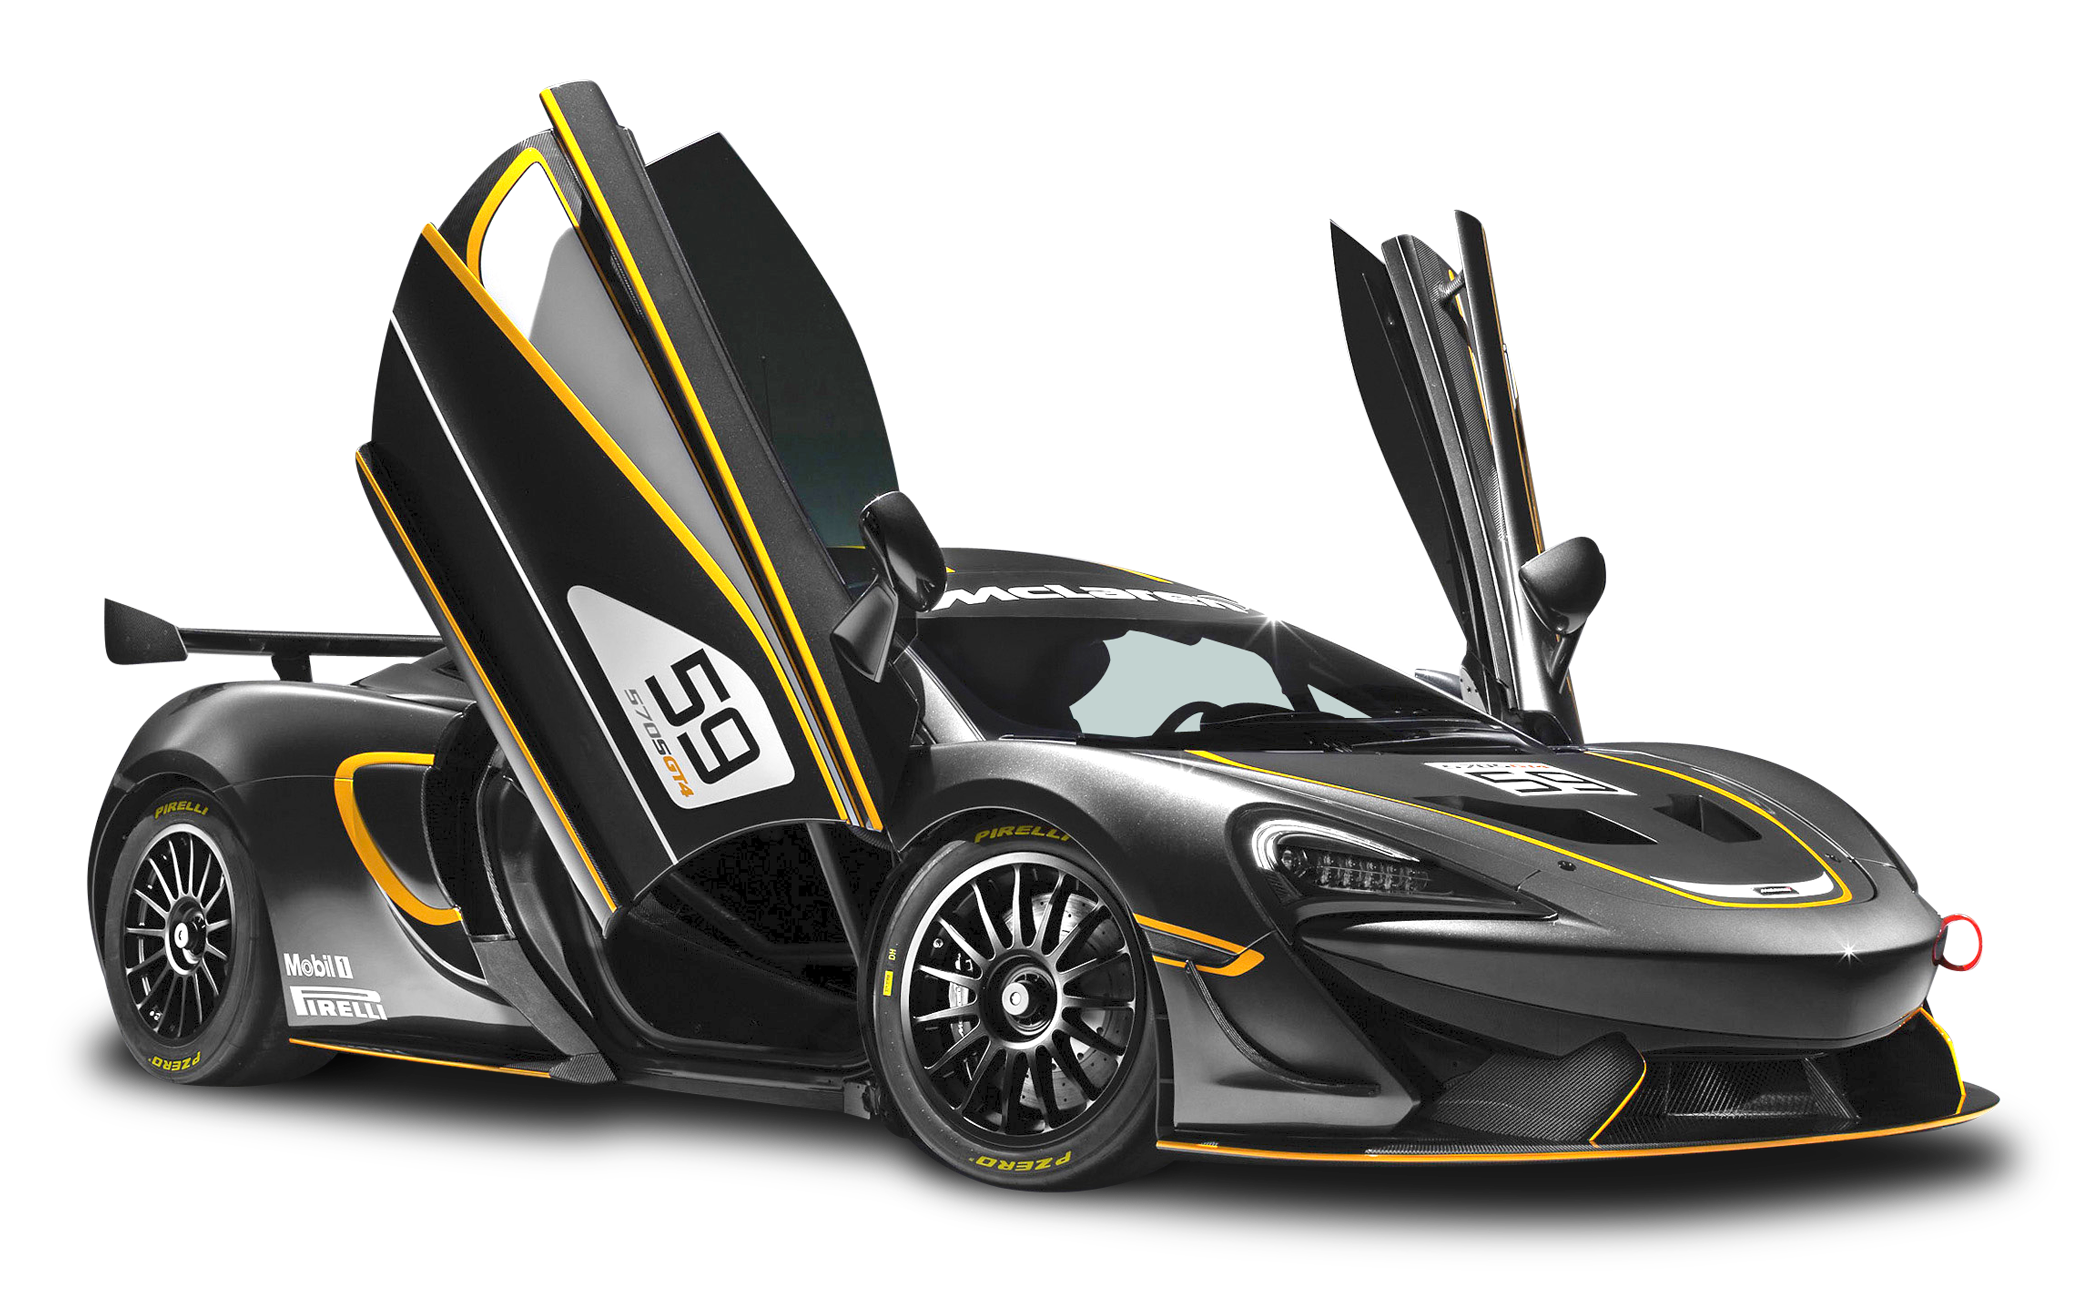 Black McLaren 570S GT4 Sports Car PNG Image